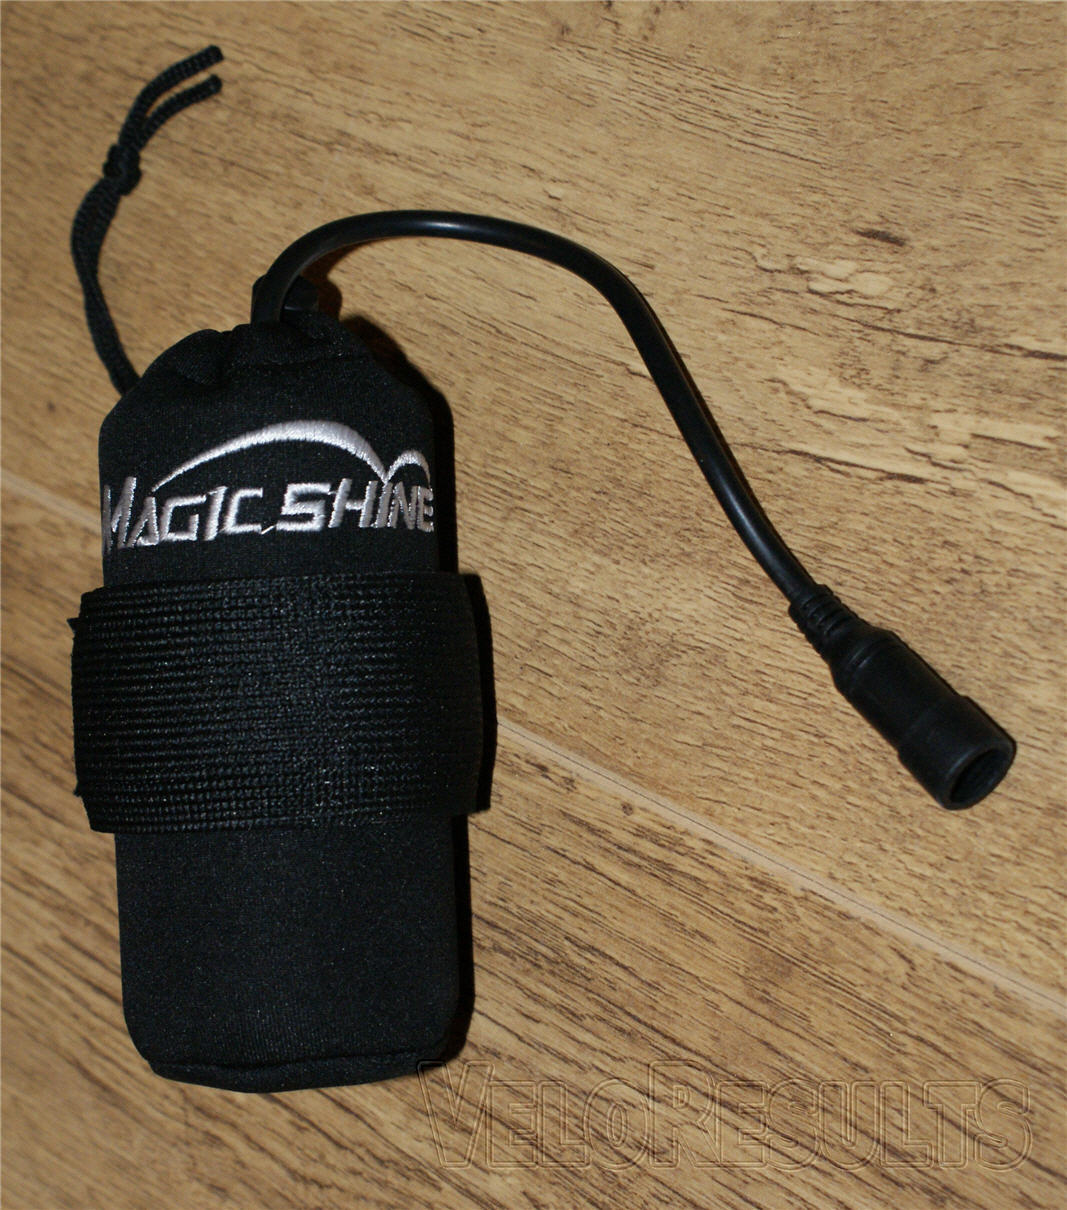 Magicshine MJ-816 Review